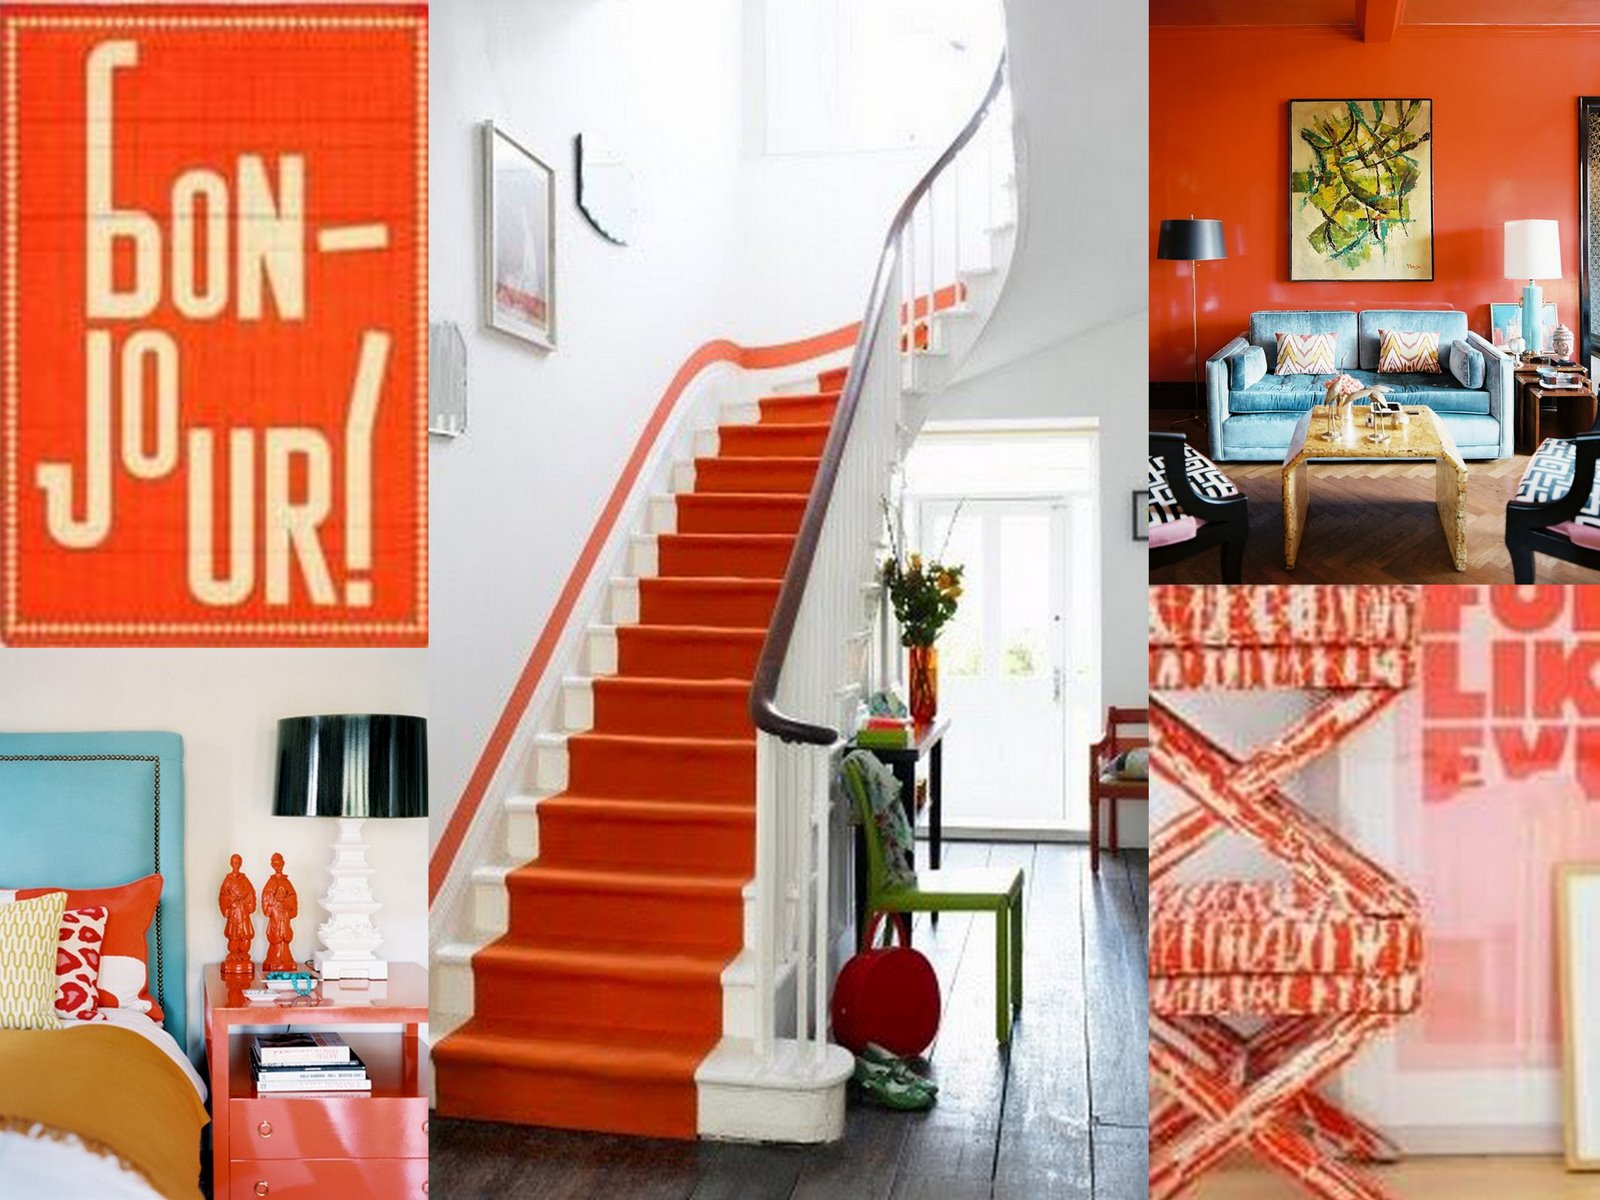 PANTONE 2012 COLOR OF THE YEAR IS TANGERINE TANGO | EVER WANTING